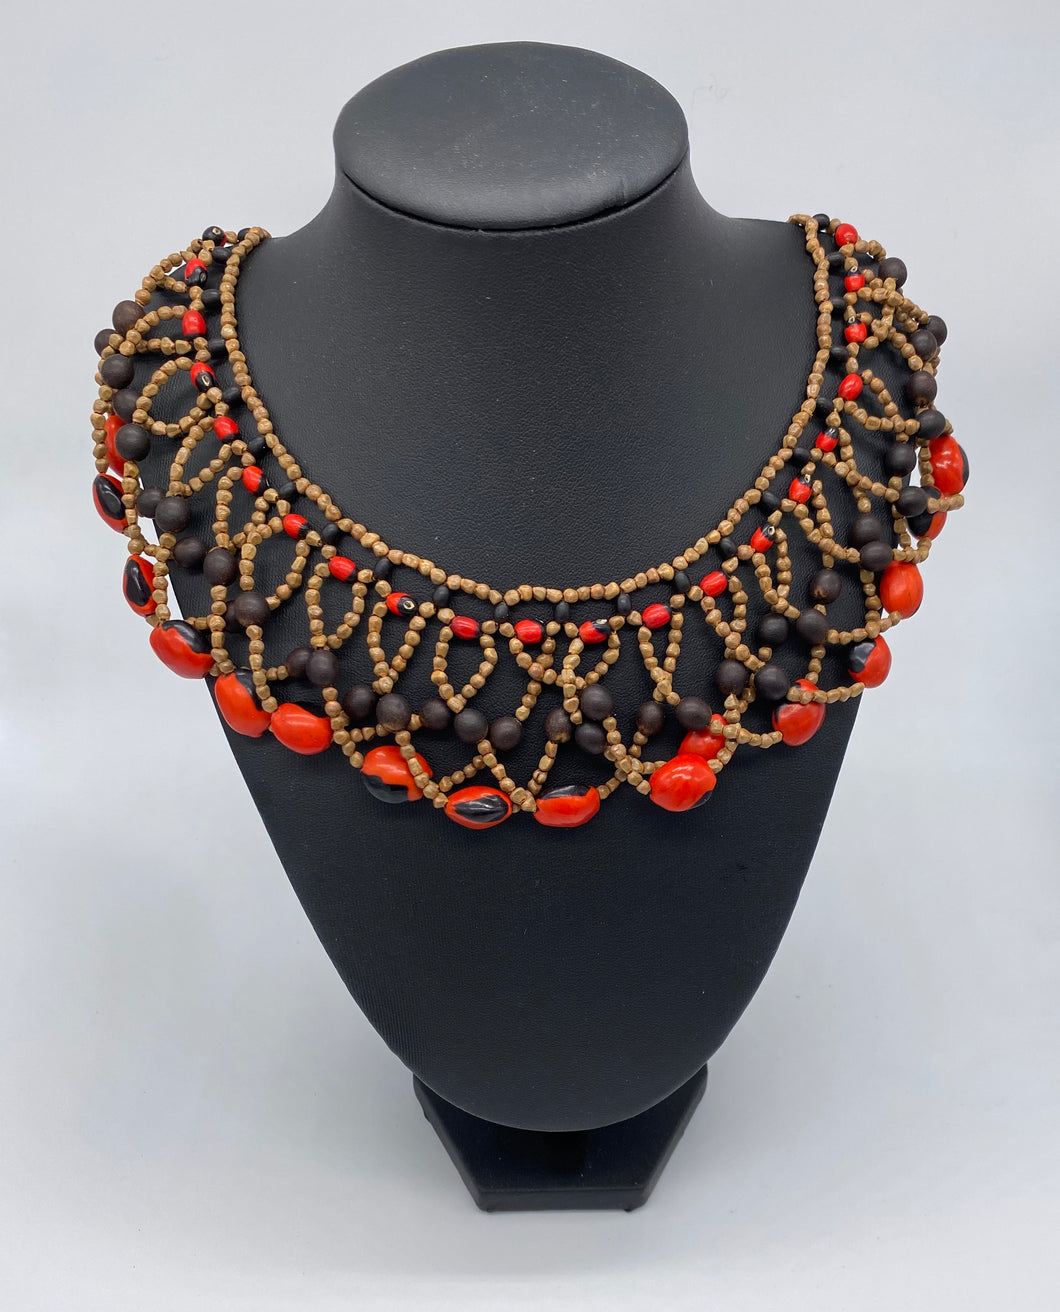 Elaborate red and black seed necklace